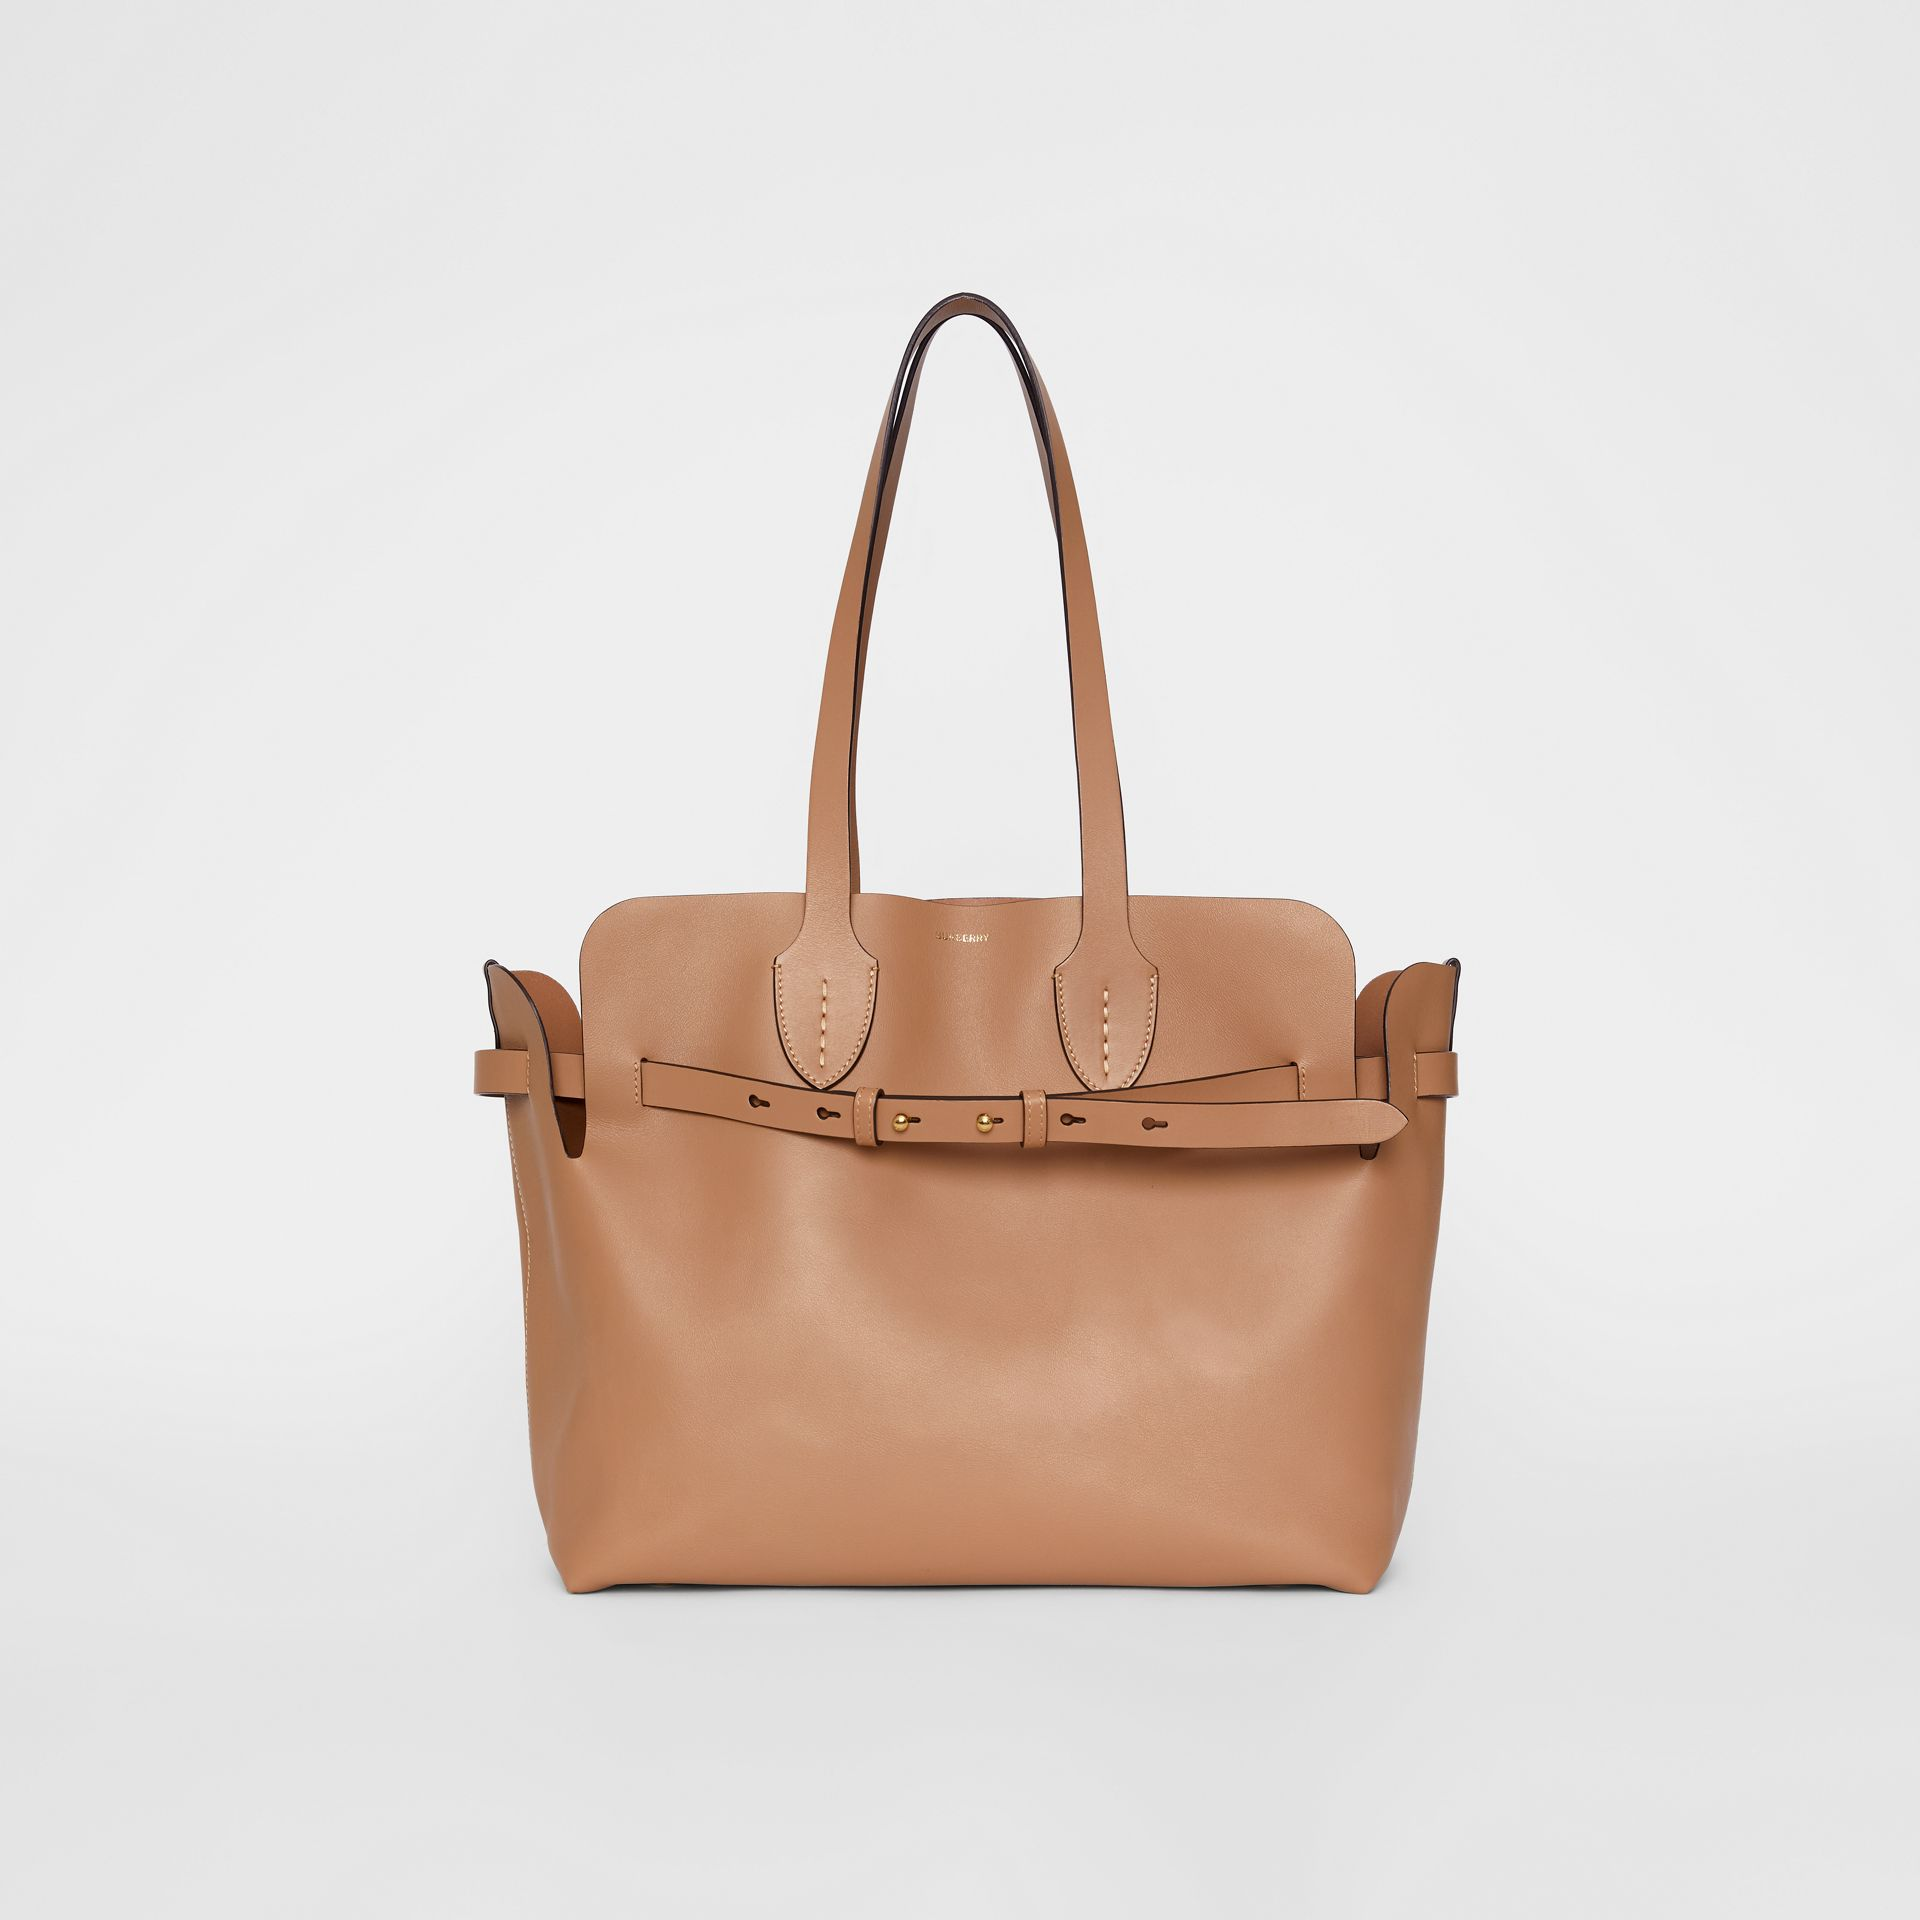 Sac The Belt moyen en cuir doux (Camel Clair) - Femme | Burberry - photo de la galerie 0